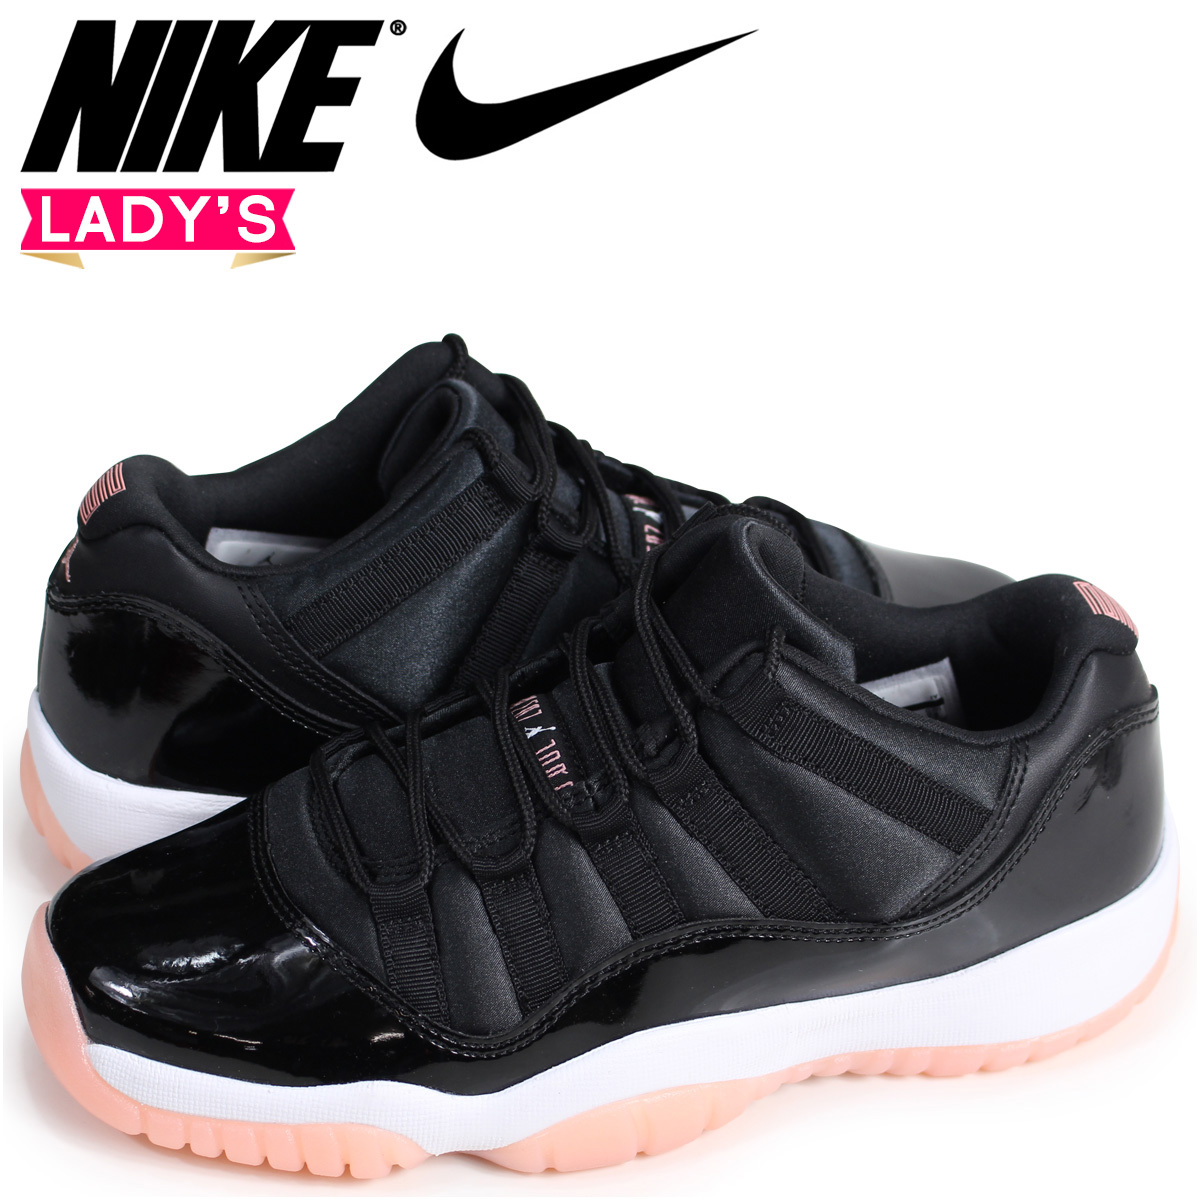 Nike NIKE Air Jordan 11 Lady s sneakers AIR JORDAN 11 RETRO LOW GG  580 a0ee06fe07f2